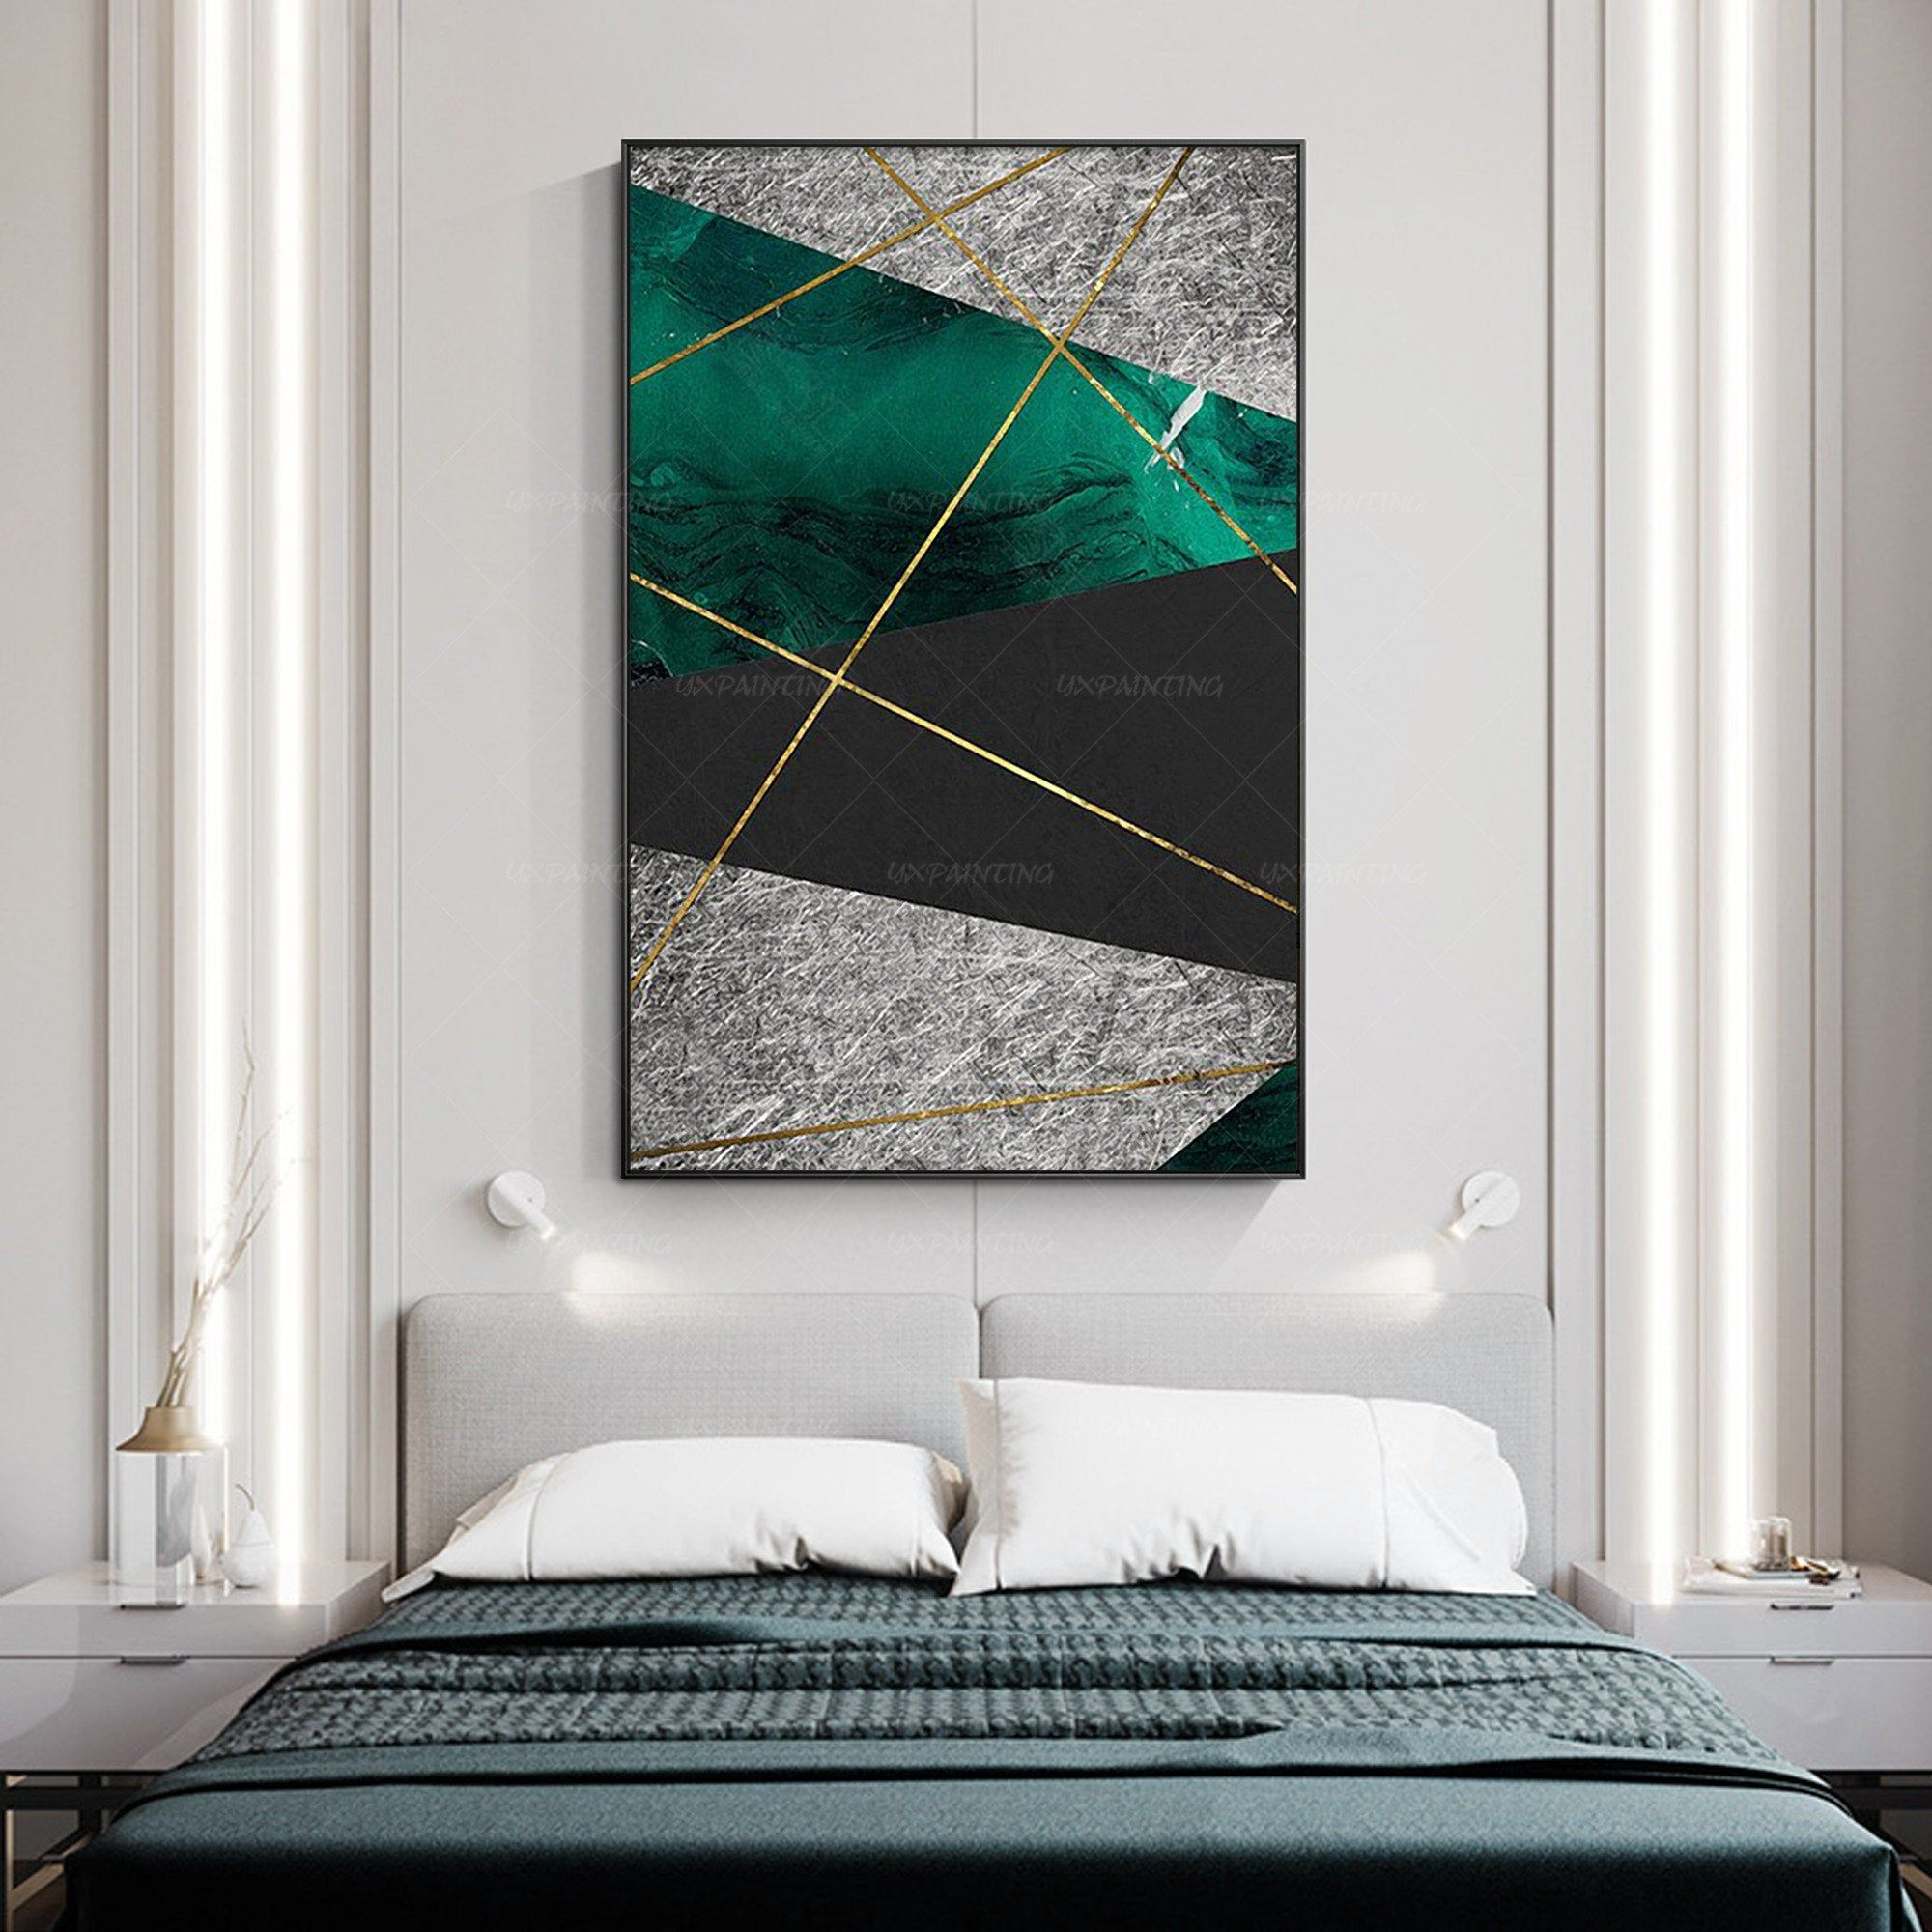 Silver Art Wall Decor Emerald Green Abstract Print On Canvas Ready To Hang Framed Poster Canvas Print Framed Paint Framed Wall Art Sets Wall Art Decor Art Wall